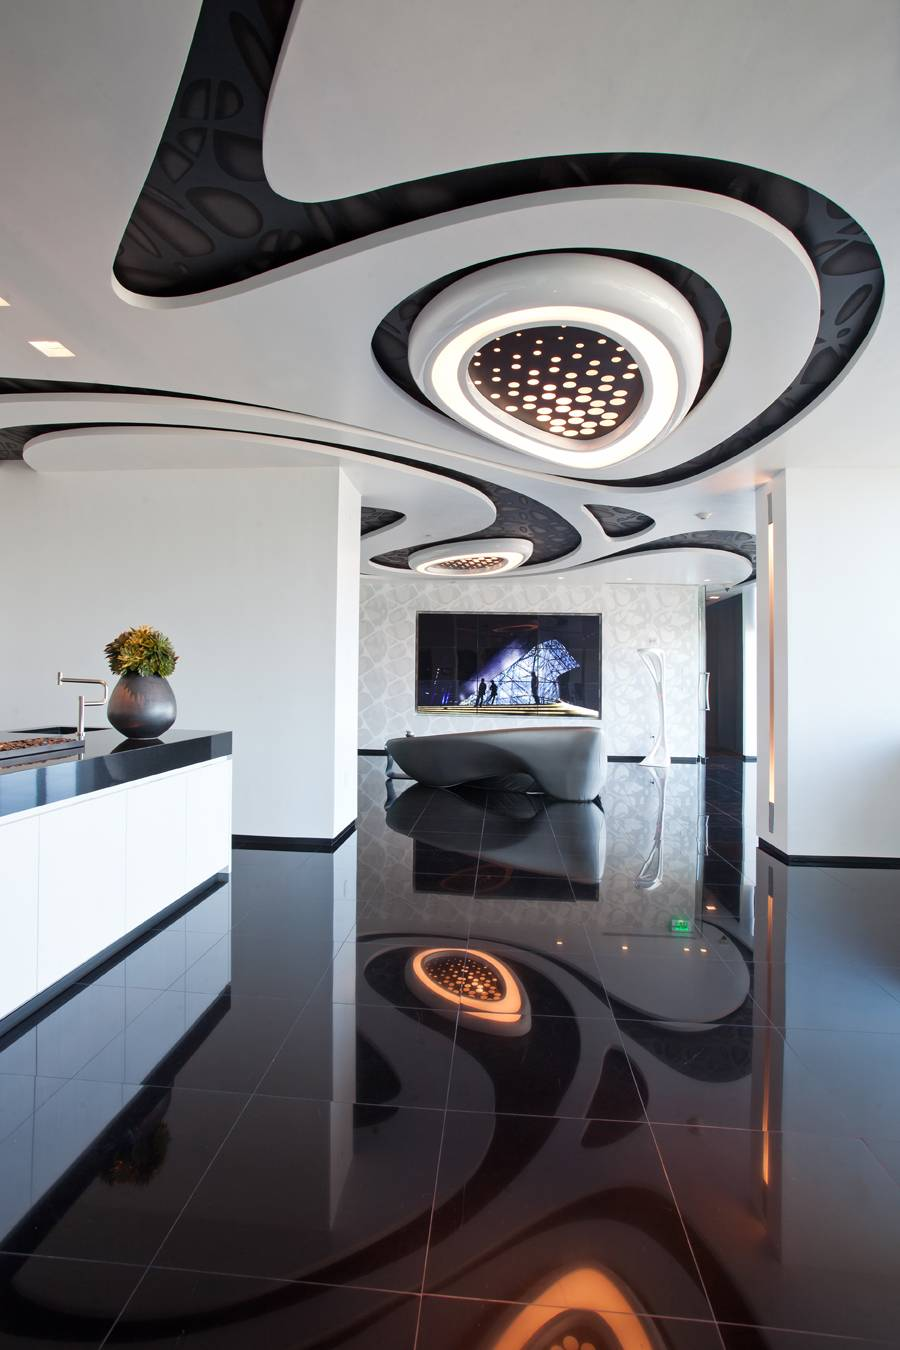 One Thousand Museum Sales Center by Zaha Hadid photo by Robin Hill (c) LO RES (3)